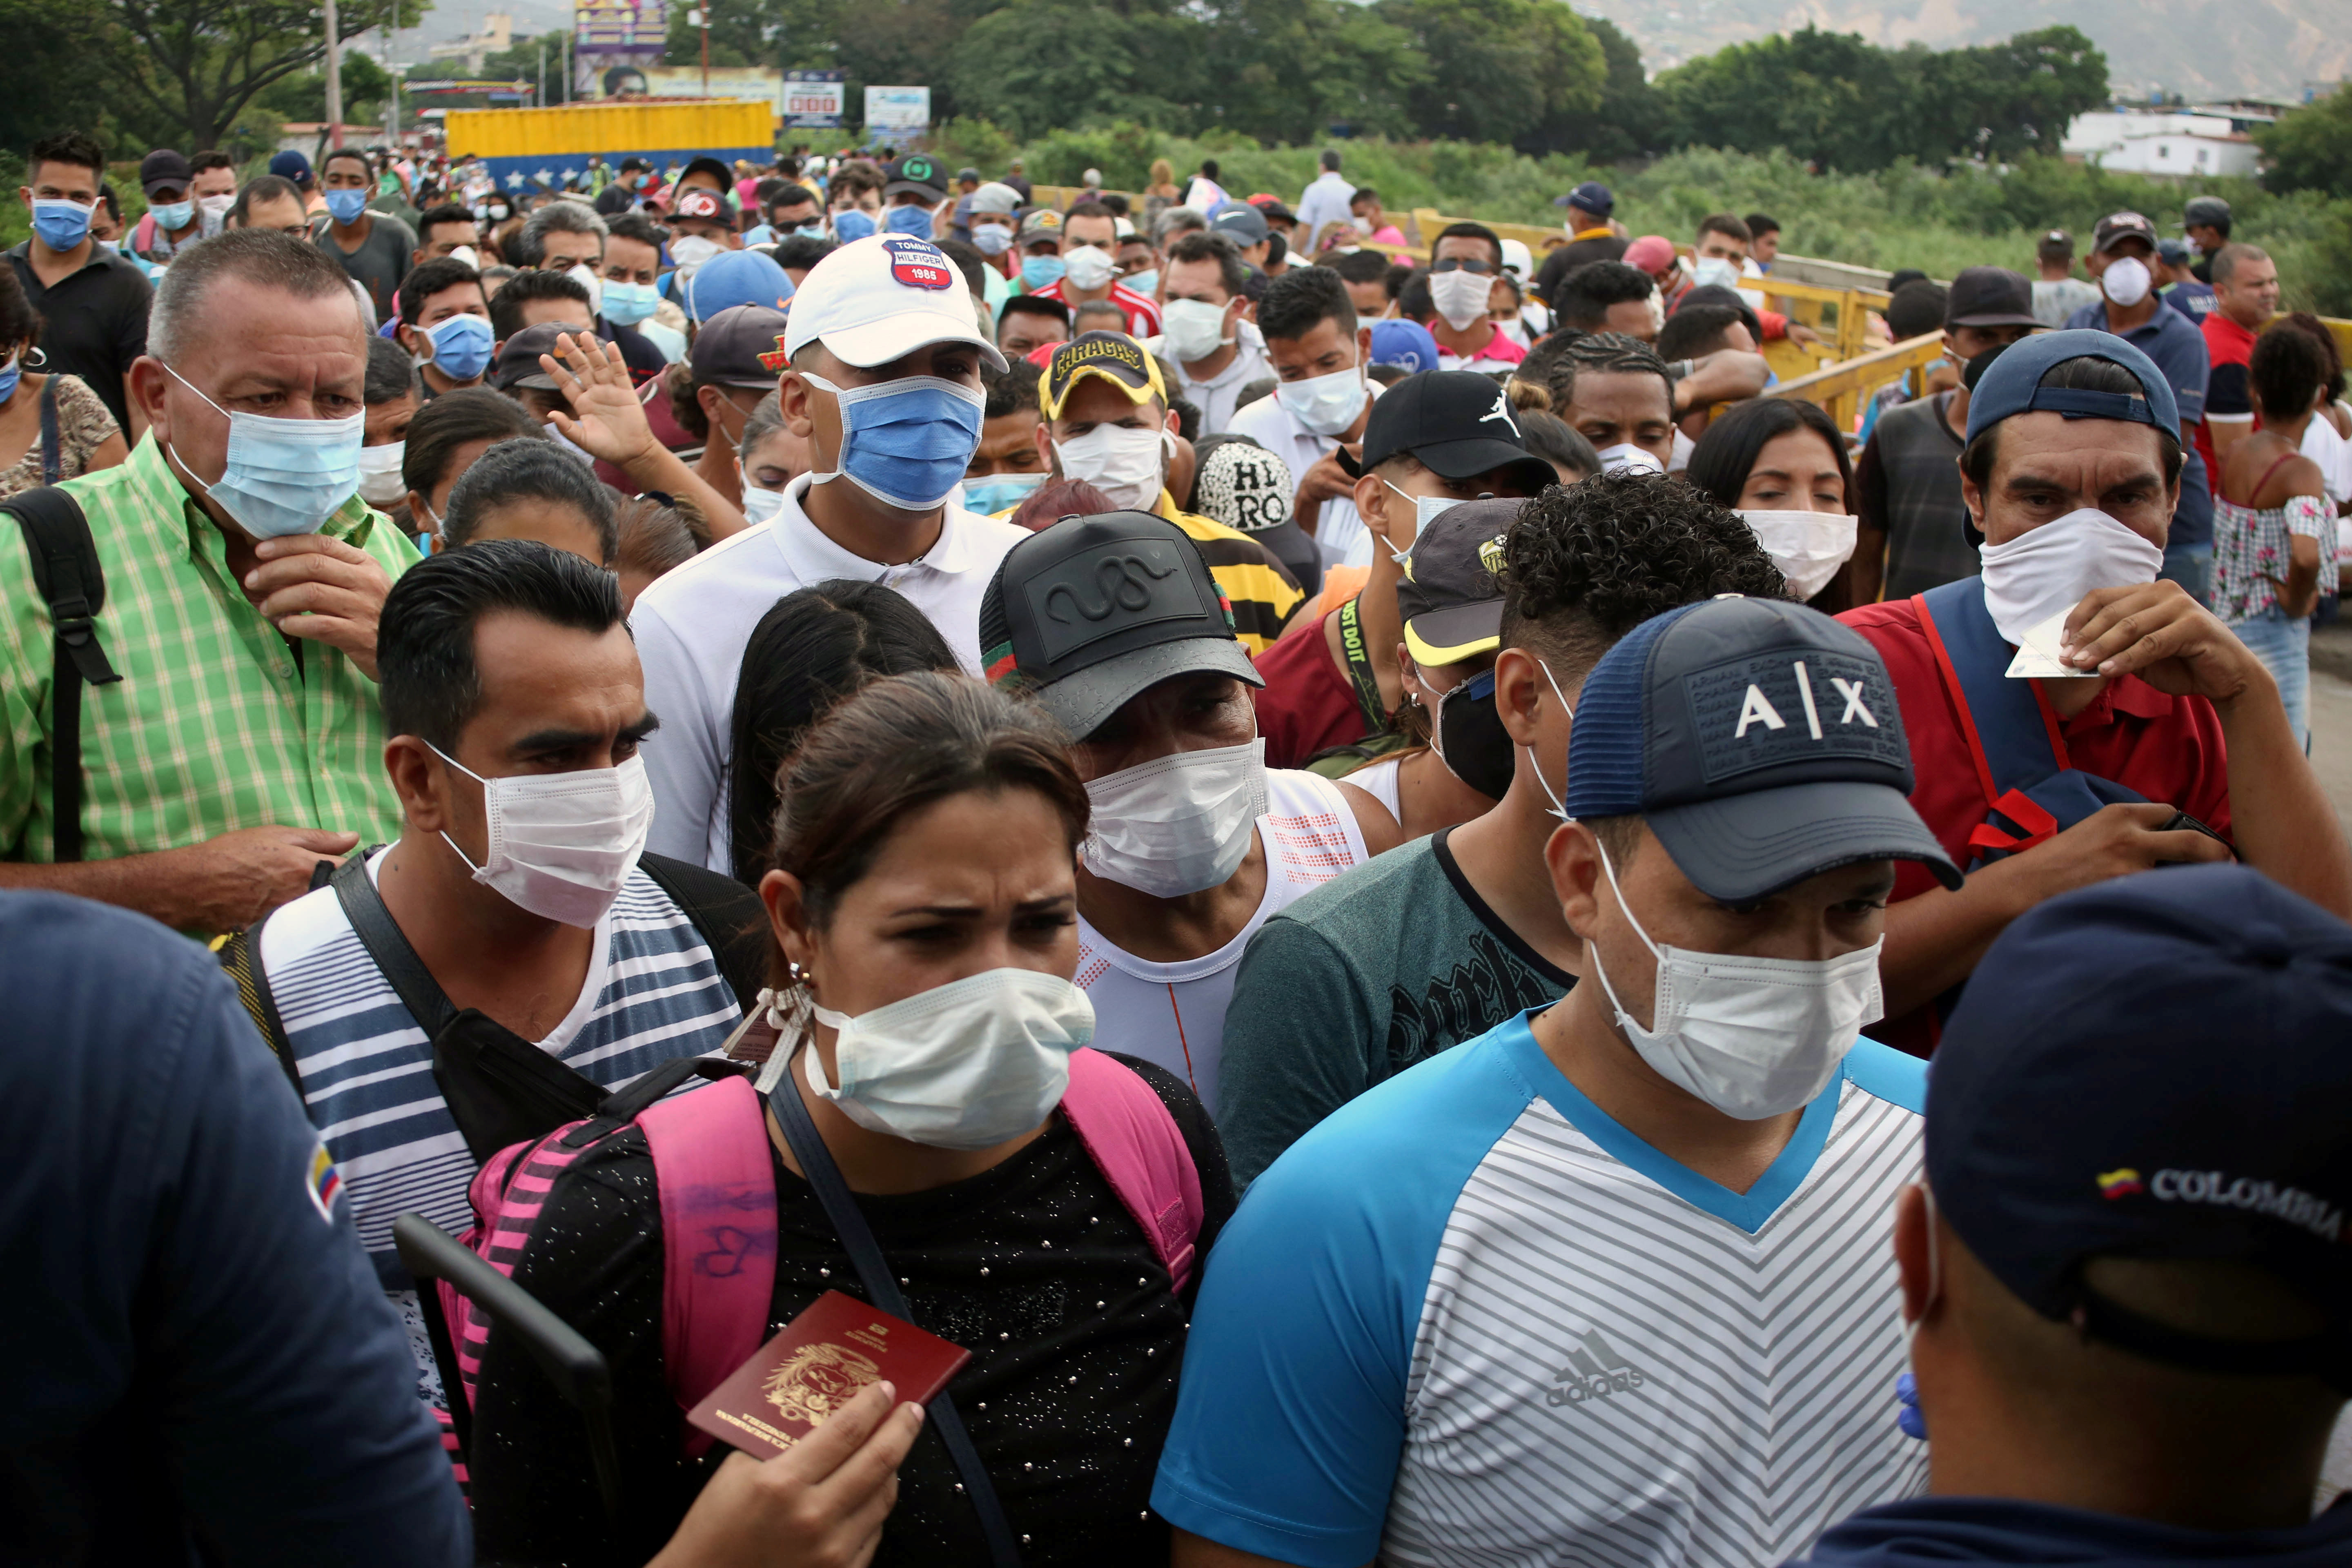 People wearing protective face masks line up to cross the border between Colombia and Venezuela at the Simon Bolivar international bridge, after the World Health Organization has described the outbreak as a pandemic, in Cucuta, Colombia March 12, 2020.  REUTERS/Carlos Eduardo Ramirez